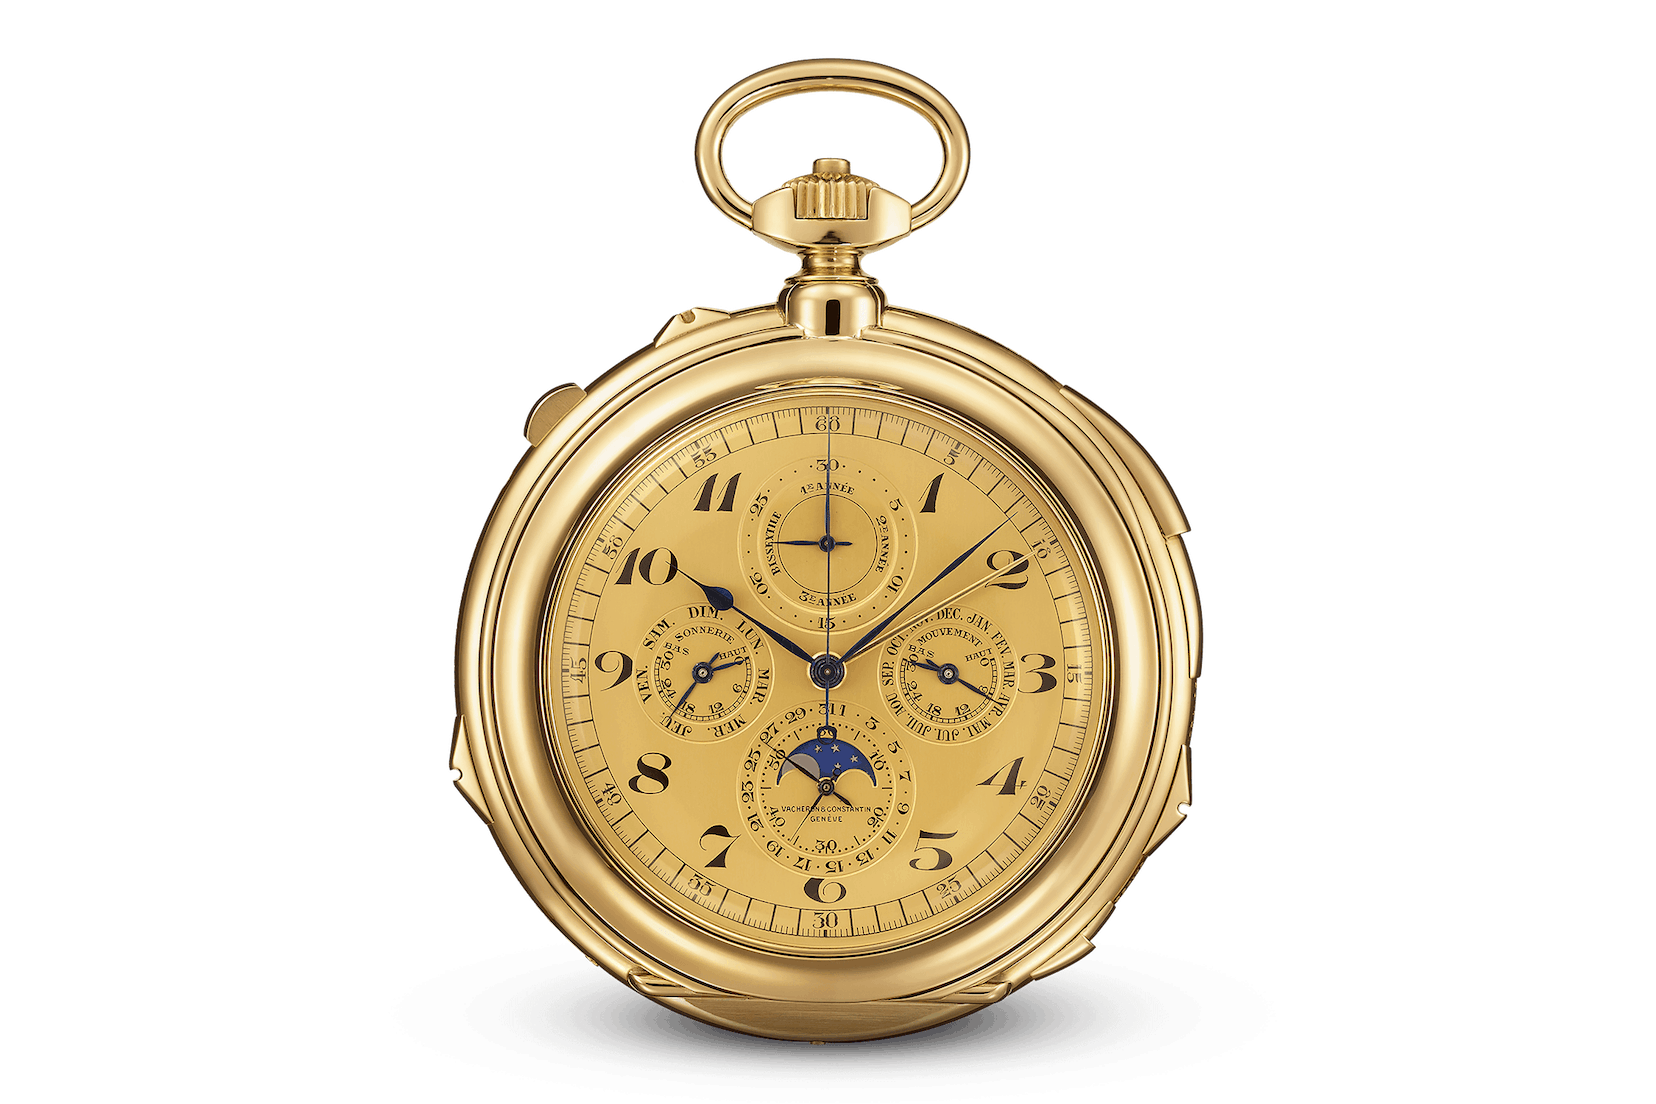 1935 - Delivery of 'The Farouk', one of the most complicated pocketwatches of the 20th century